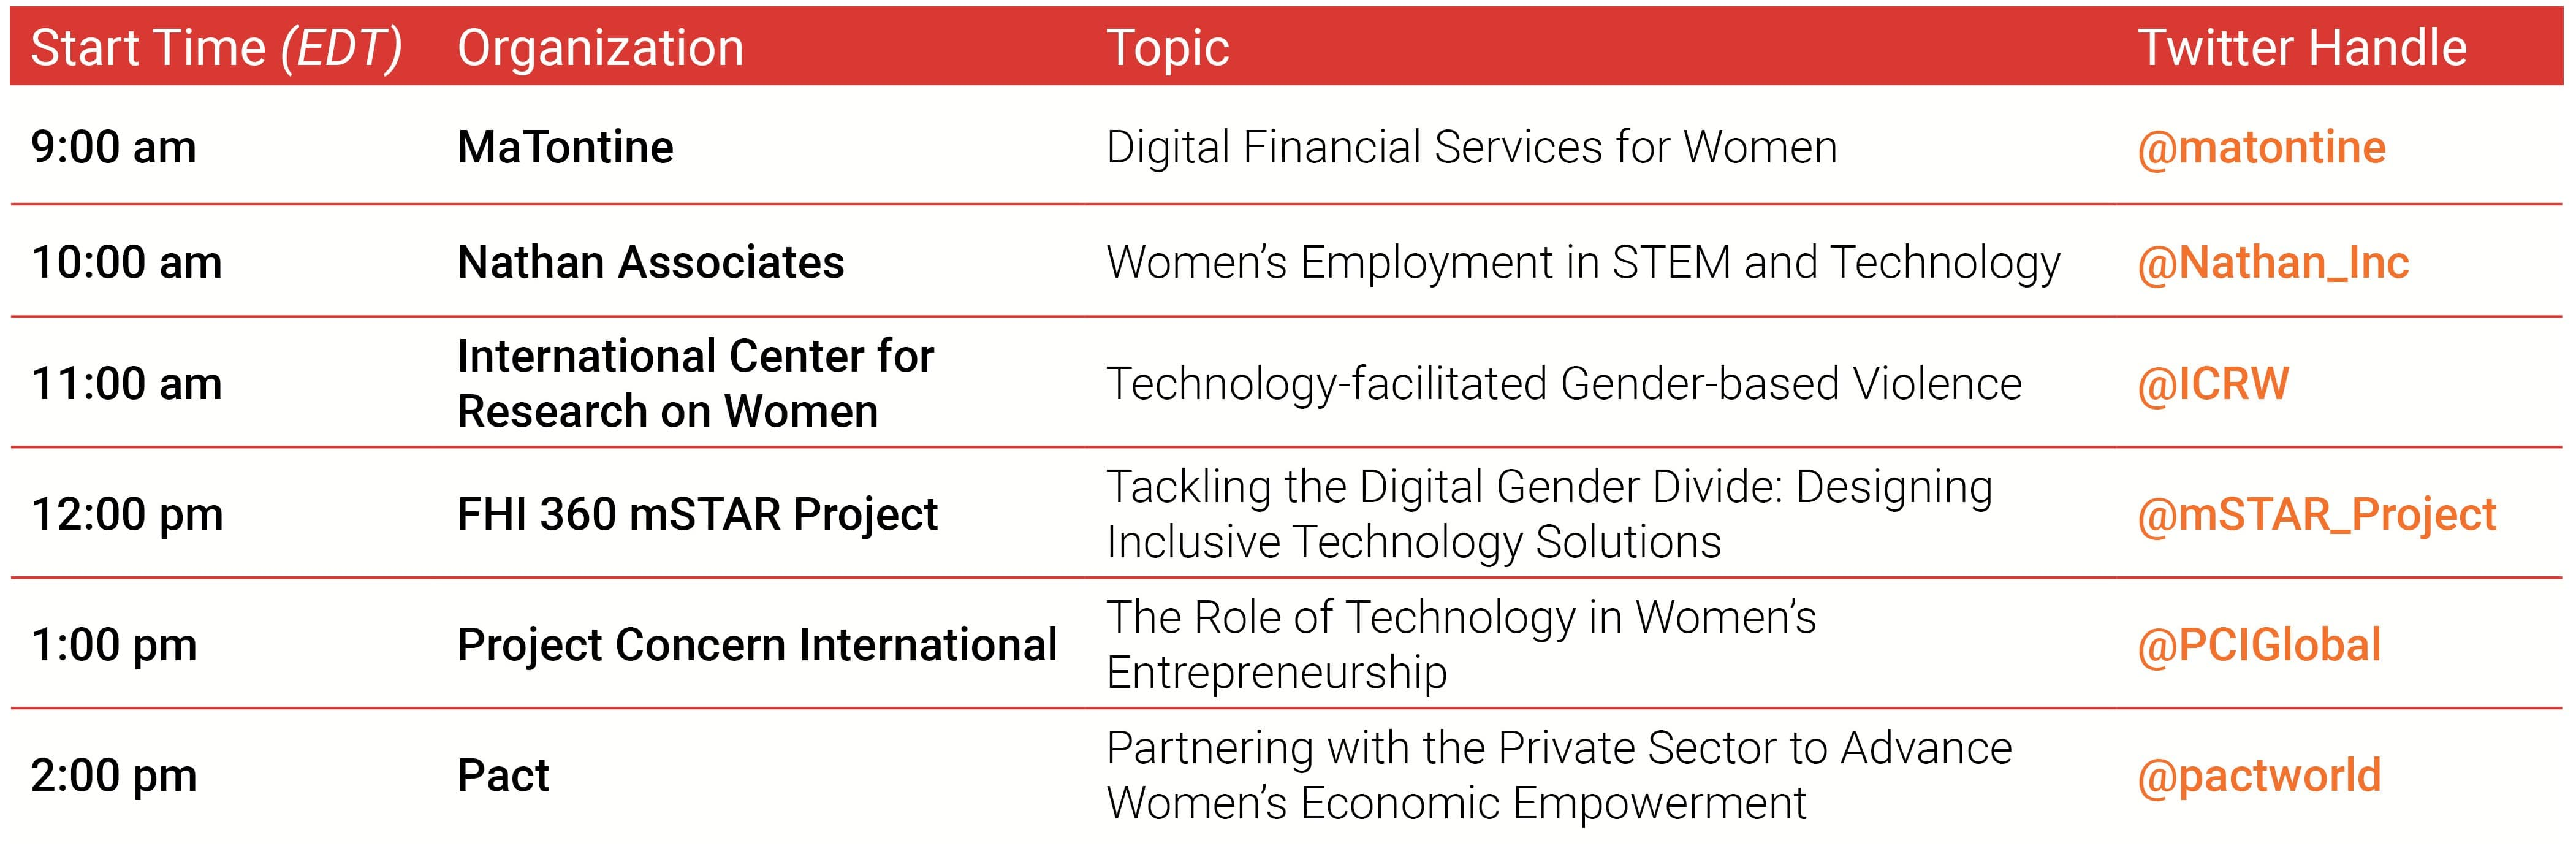 Twitter Chat: Technology and Innovation in Women's Economic Empowerment